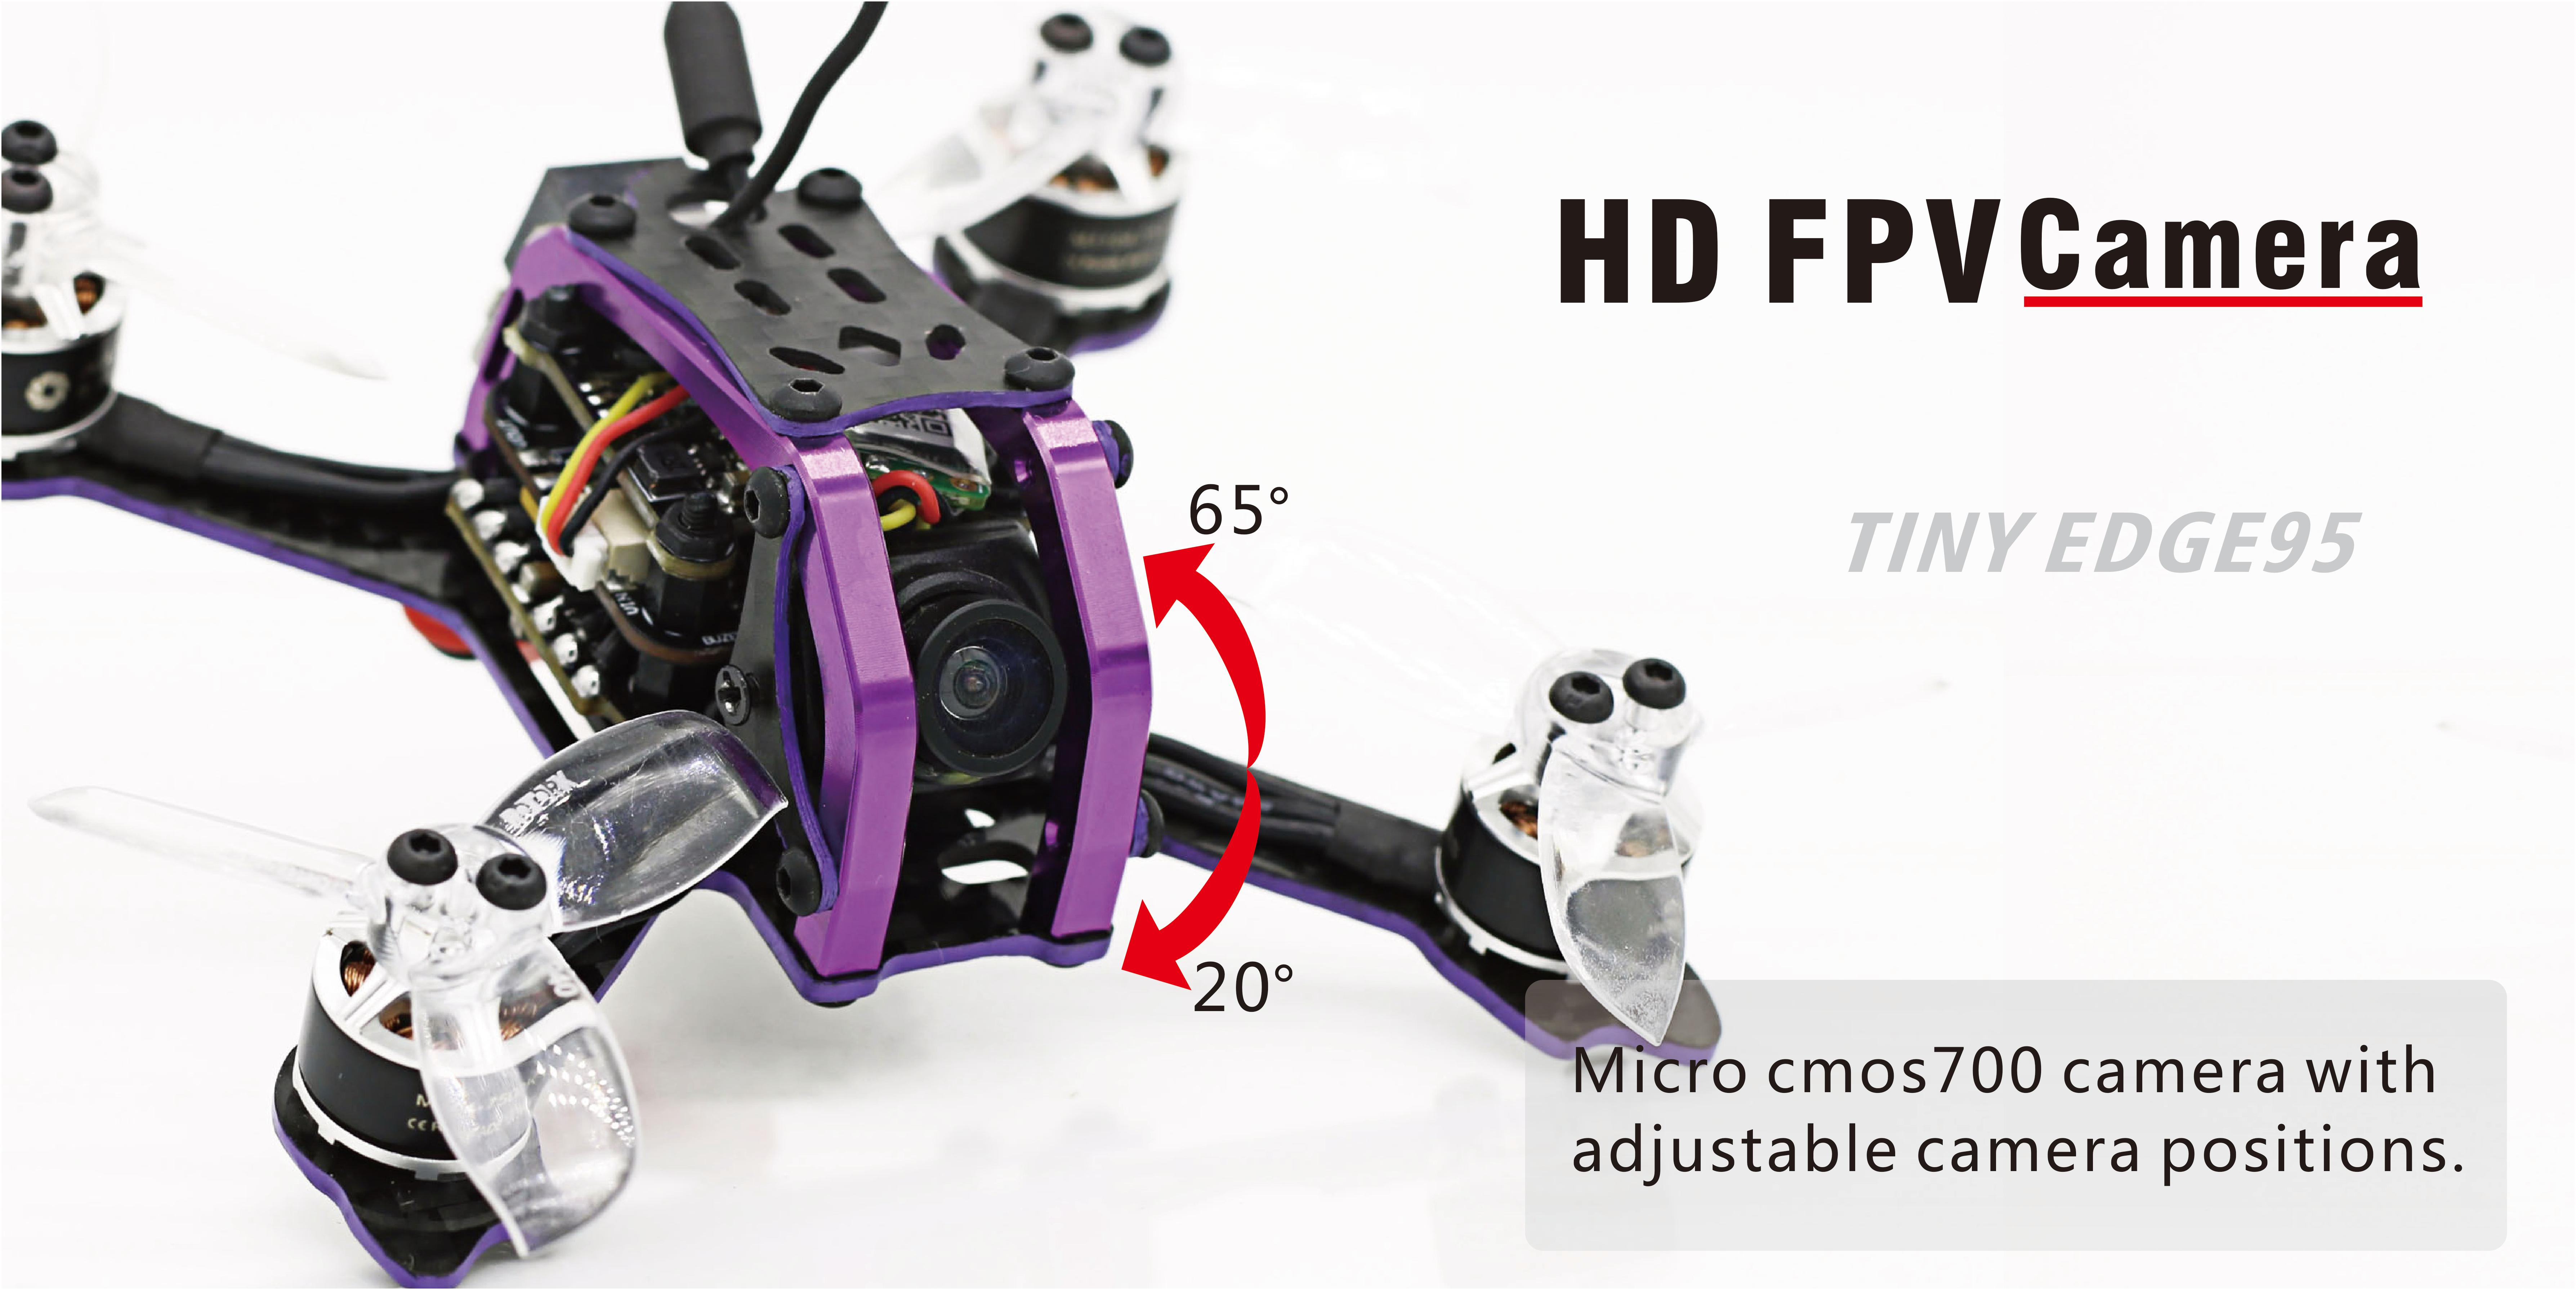 SKYSTARS Little Edge 95mm RC FPV Racing Drone PNP BNF W/ Micro F4 15A BLheli_S 800TVL 150mW 40CH VTX - Photo: 6